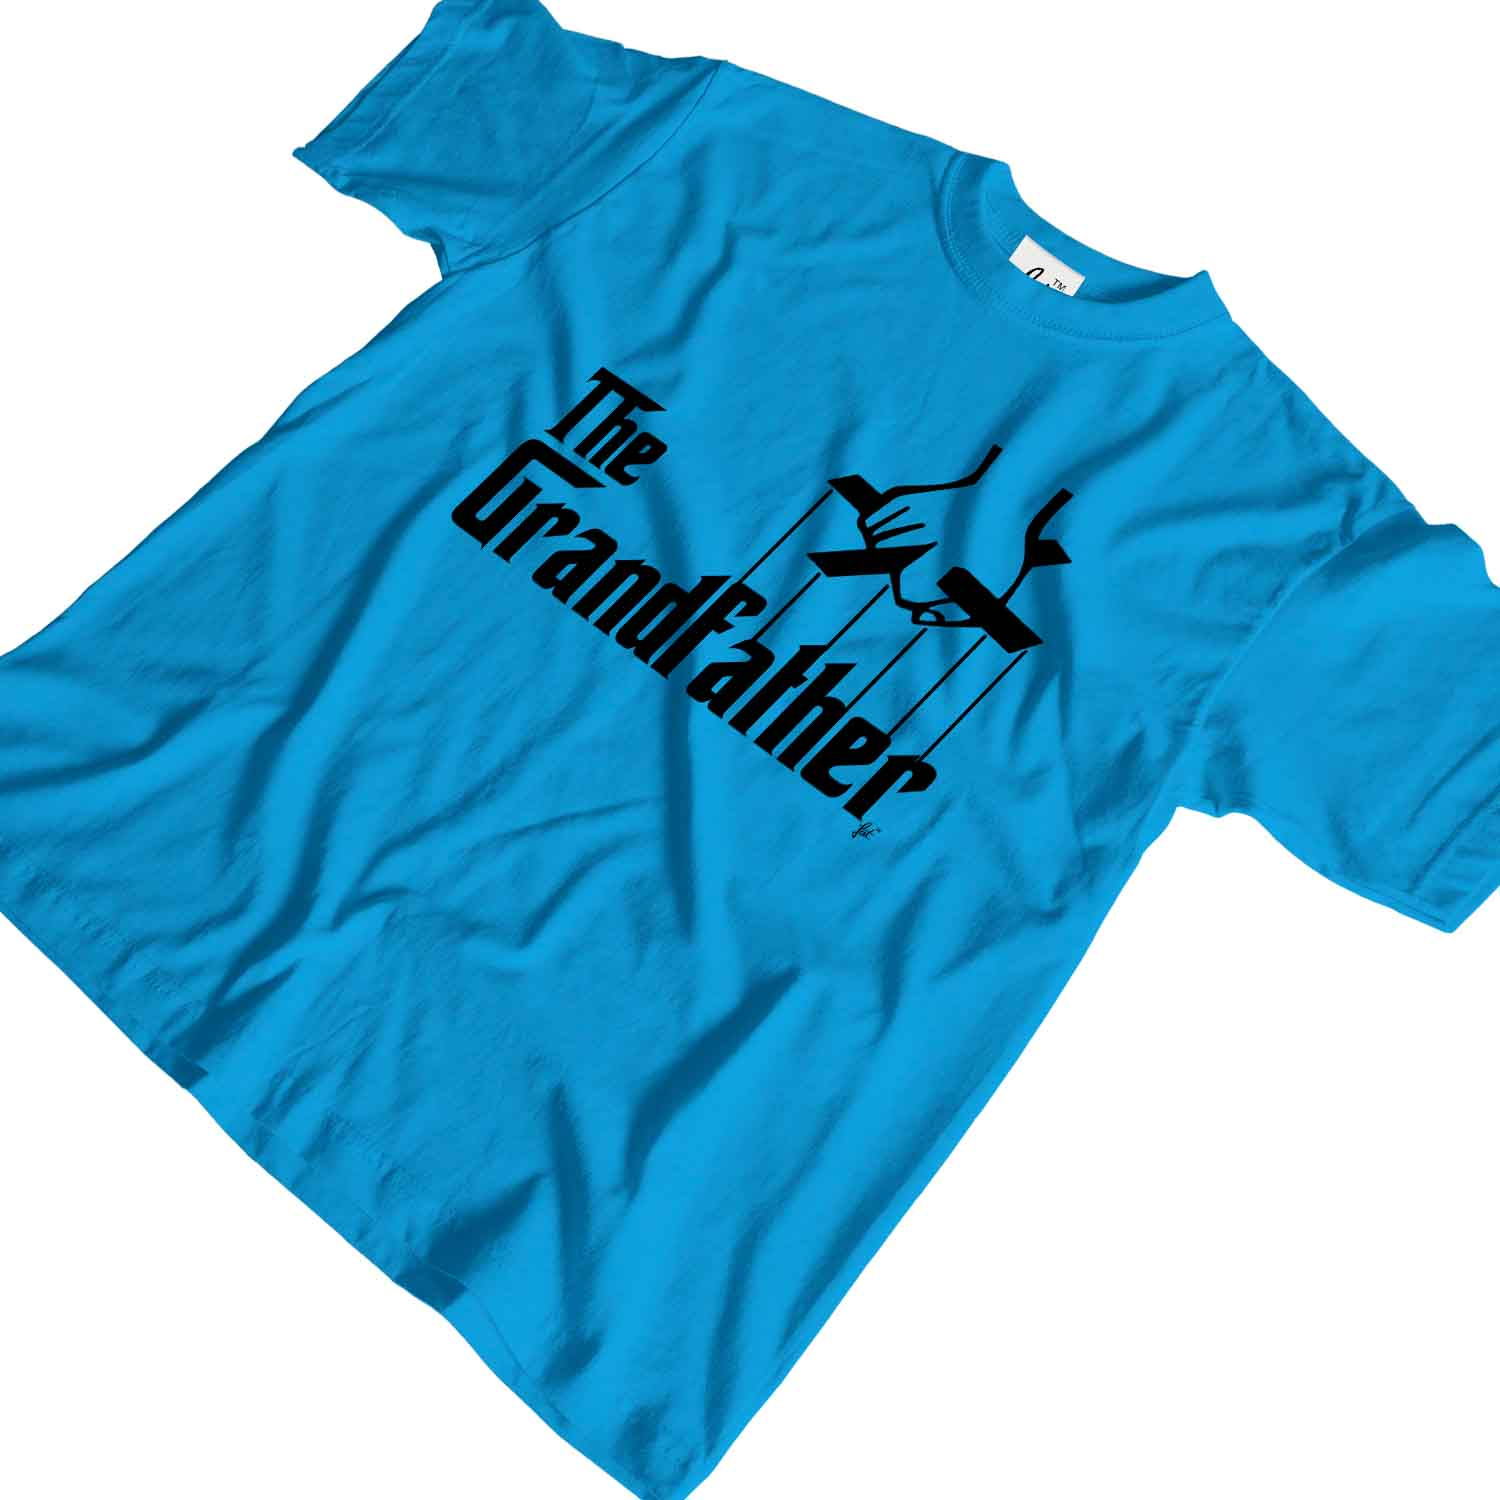 The-Grandfather-Fathers-Day-Gift-Christmas-Birthday-Present-Mens-T-Shirt